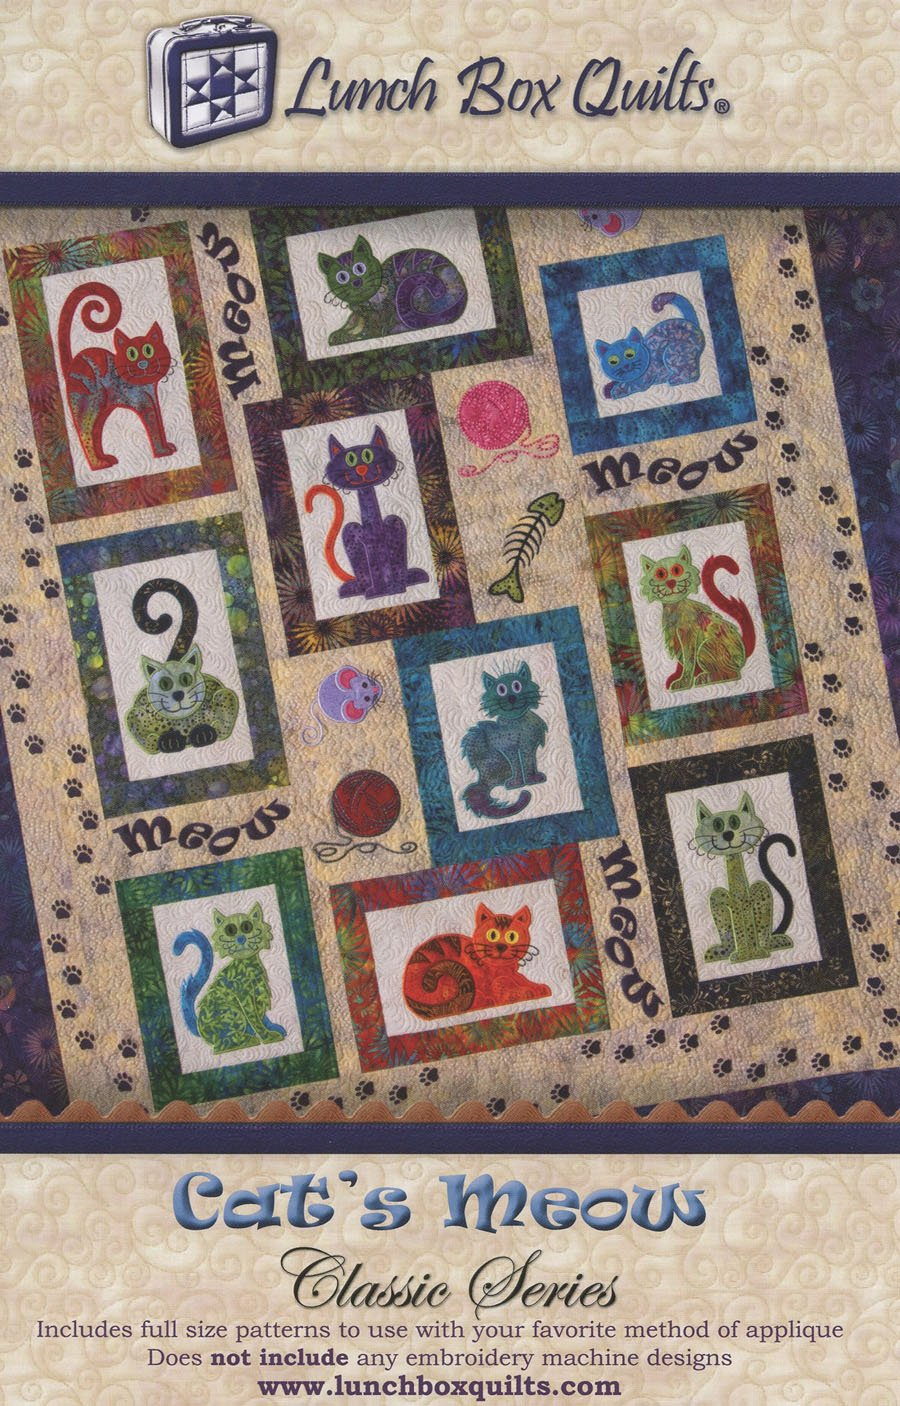 Lunch Box Quilts : lunch box quilts cats meow - Adamdwight.com